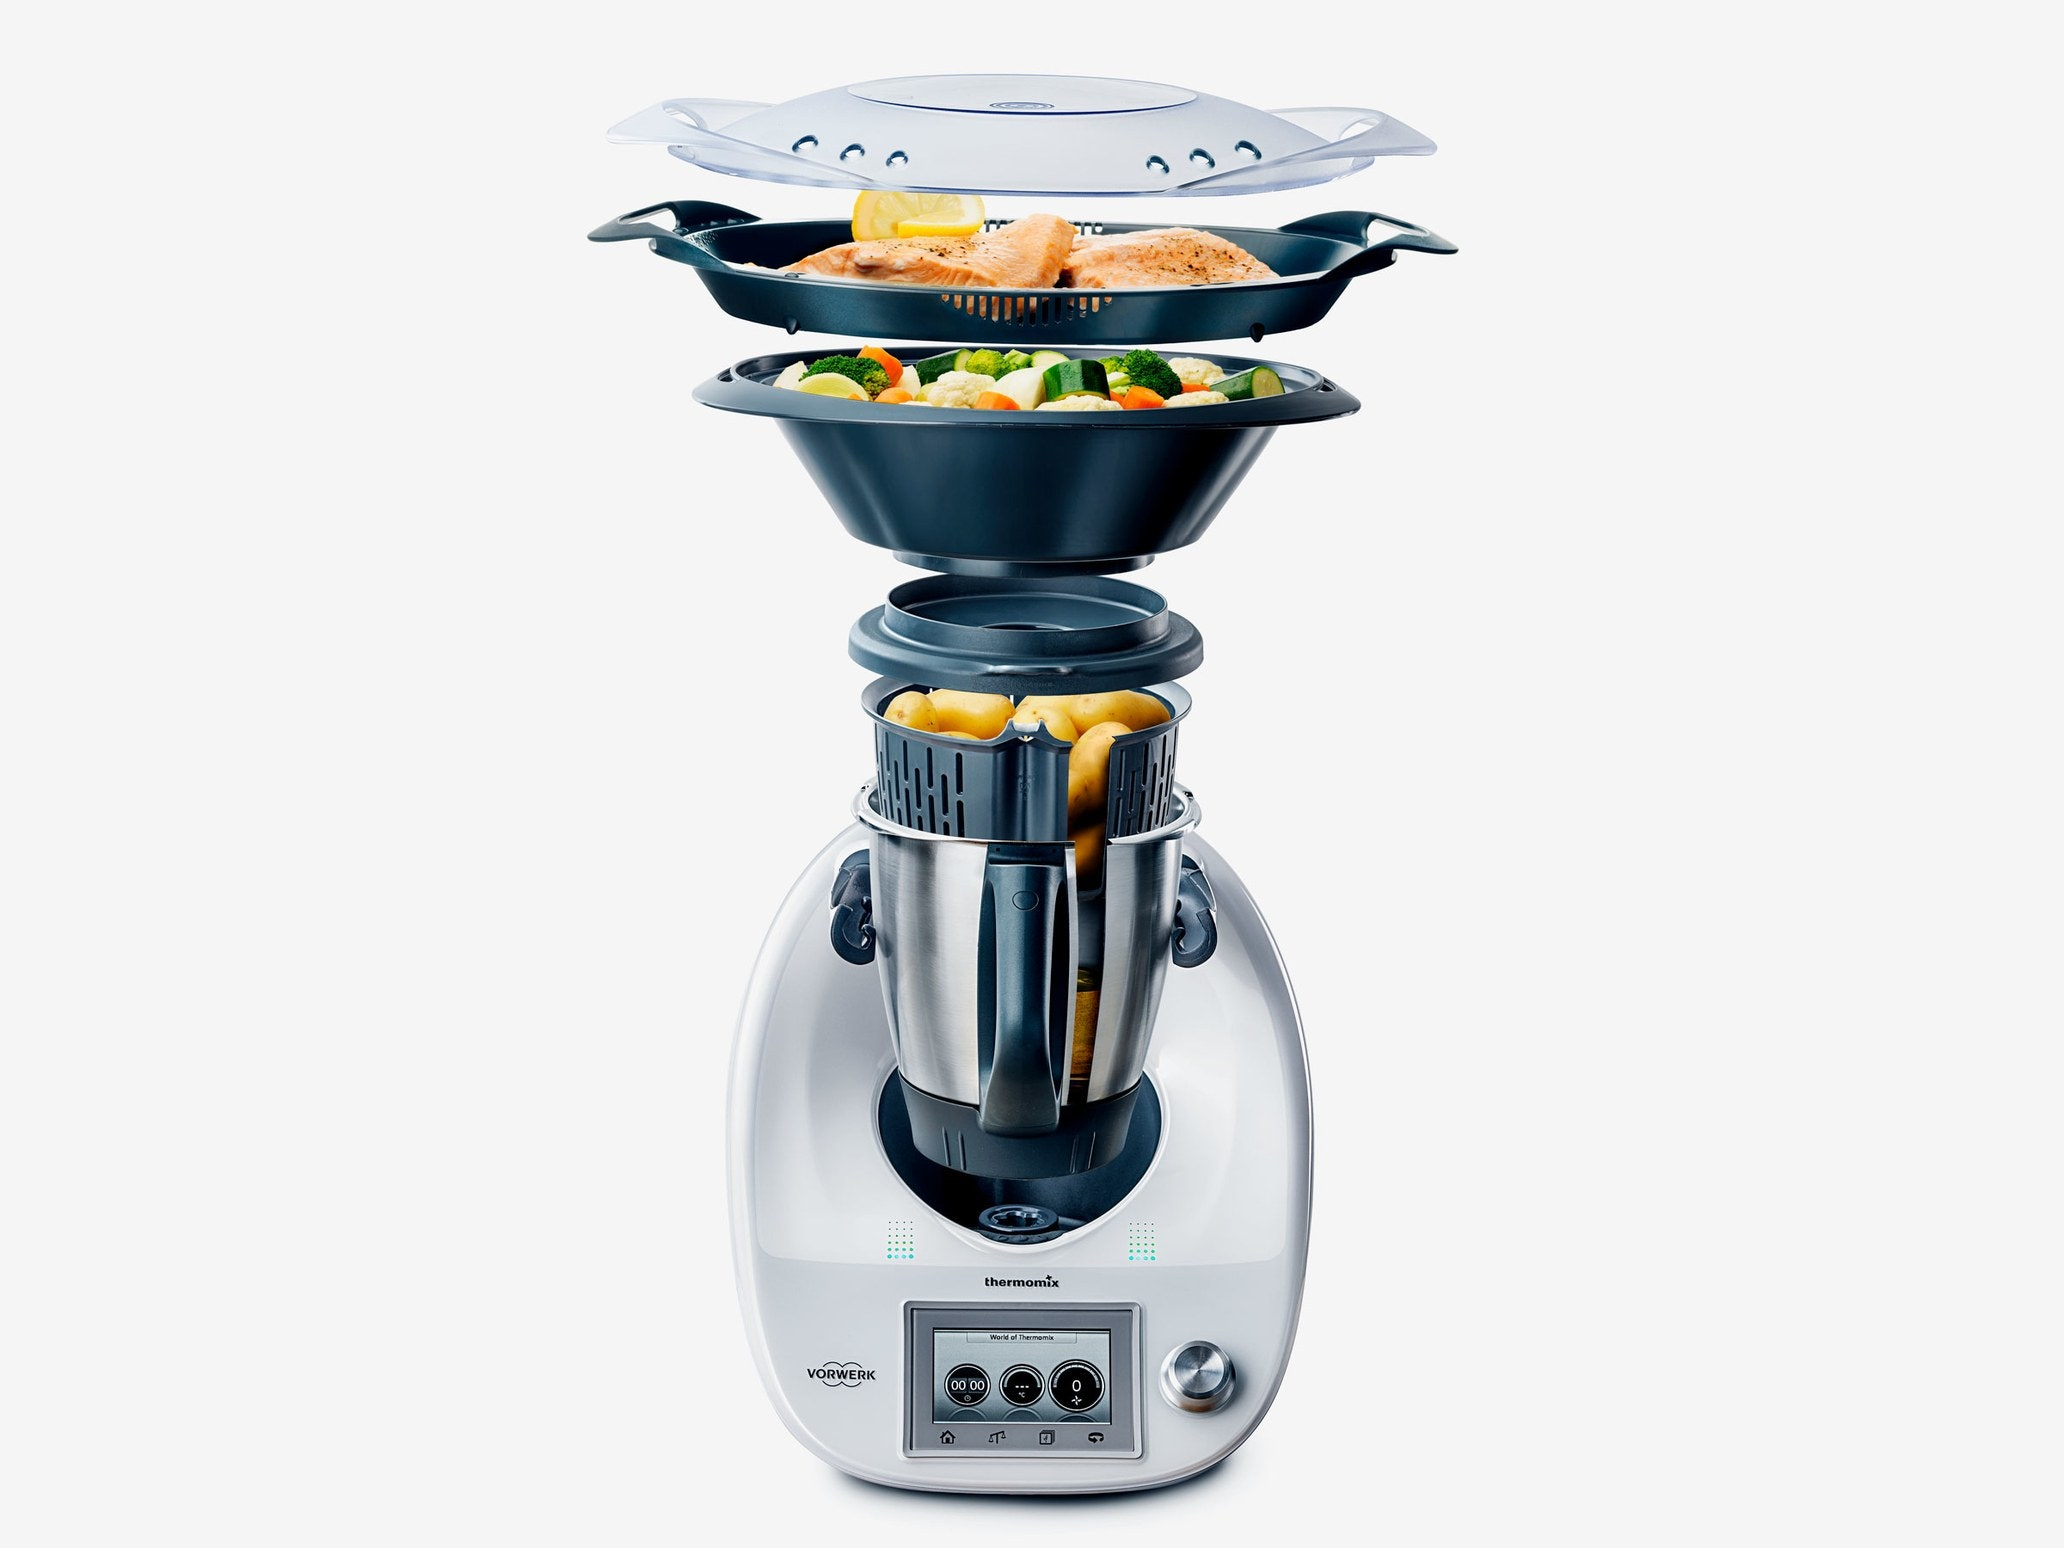 bimby kitchen robot mr direct sinks reviews thermomix review there s not much it can t do well wired